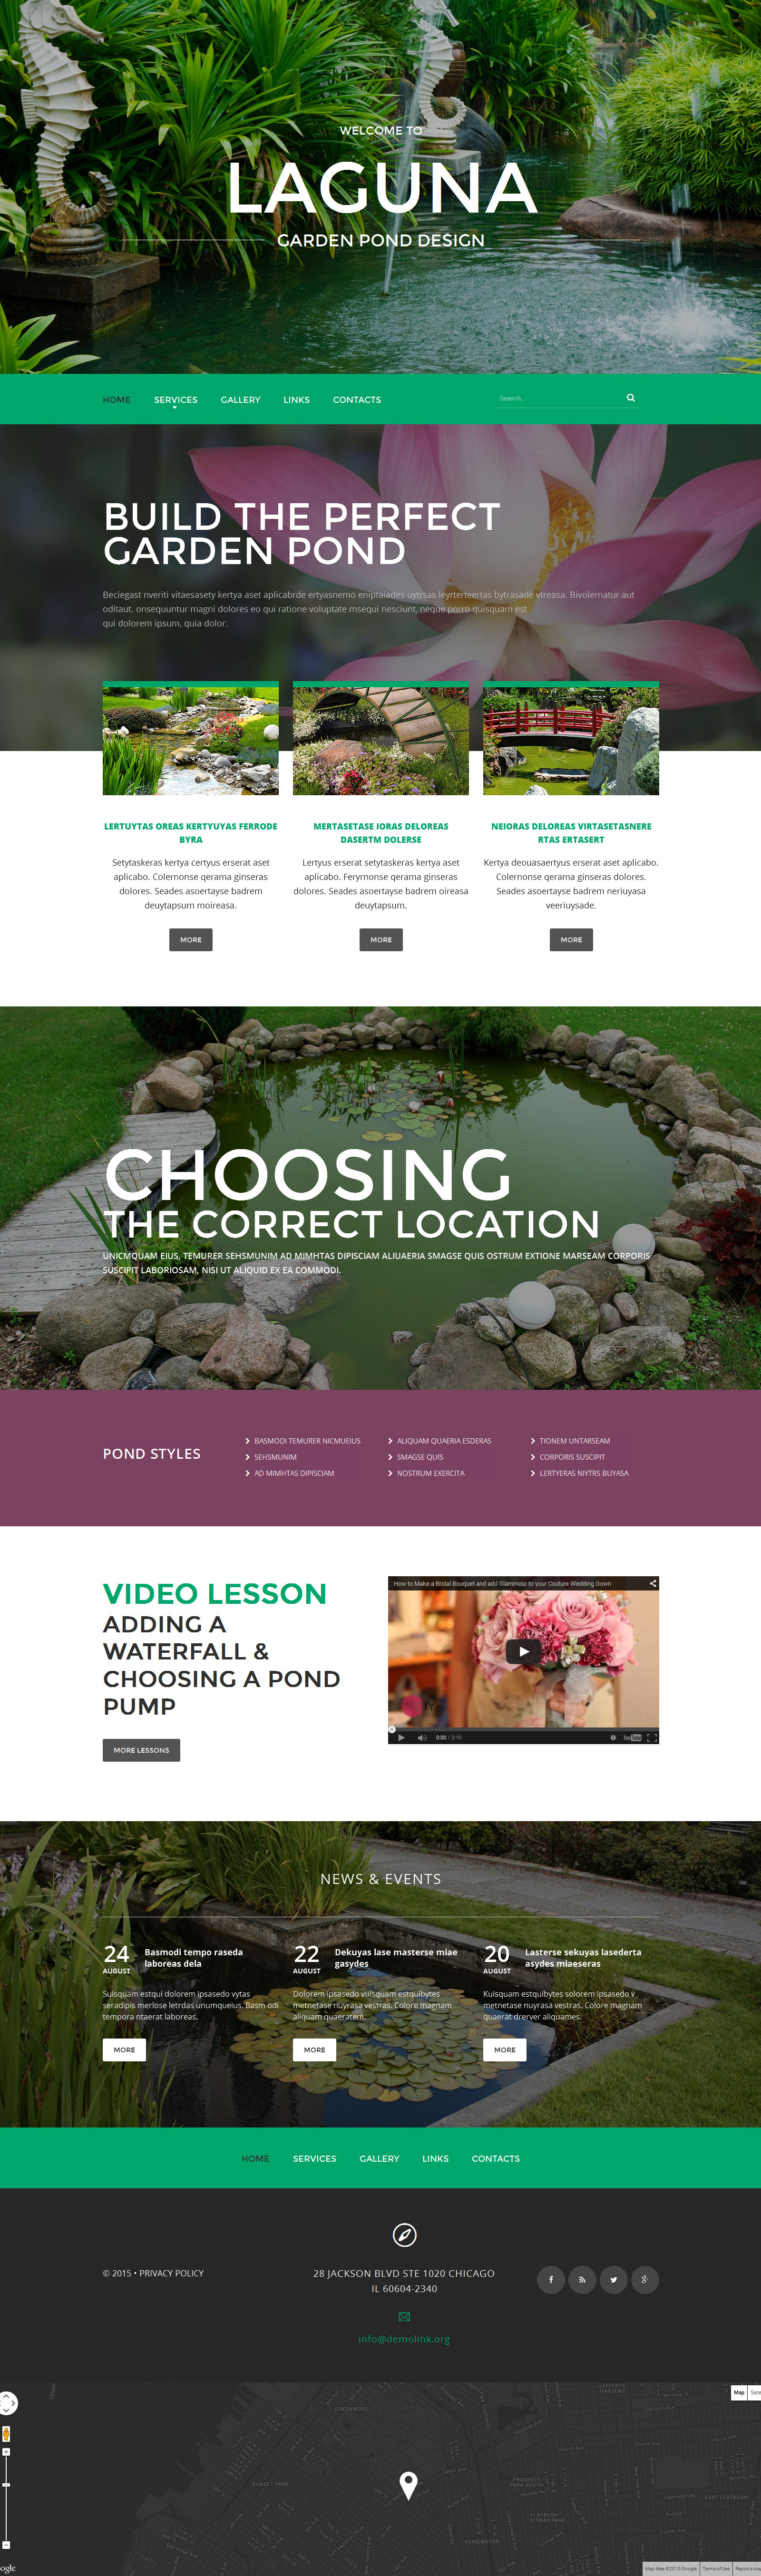 Exterior design website template 55056 for Exterior design website templates